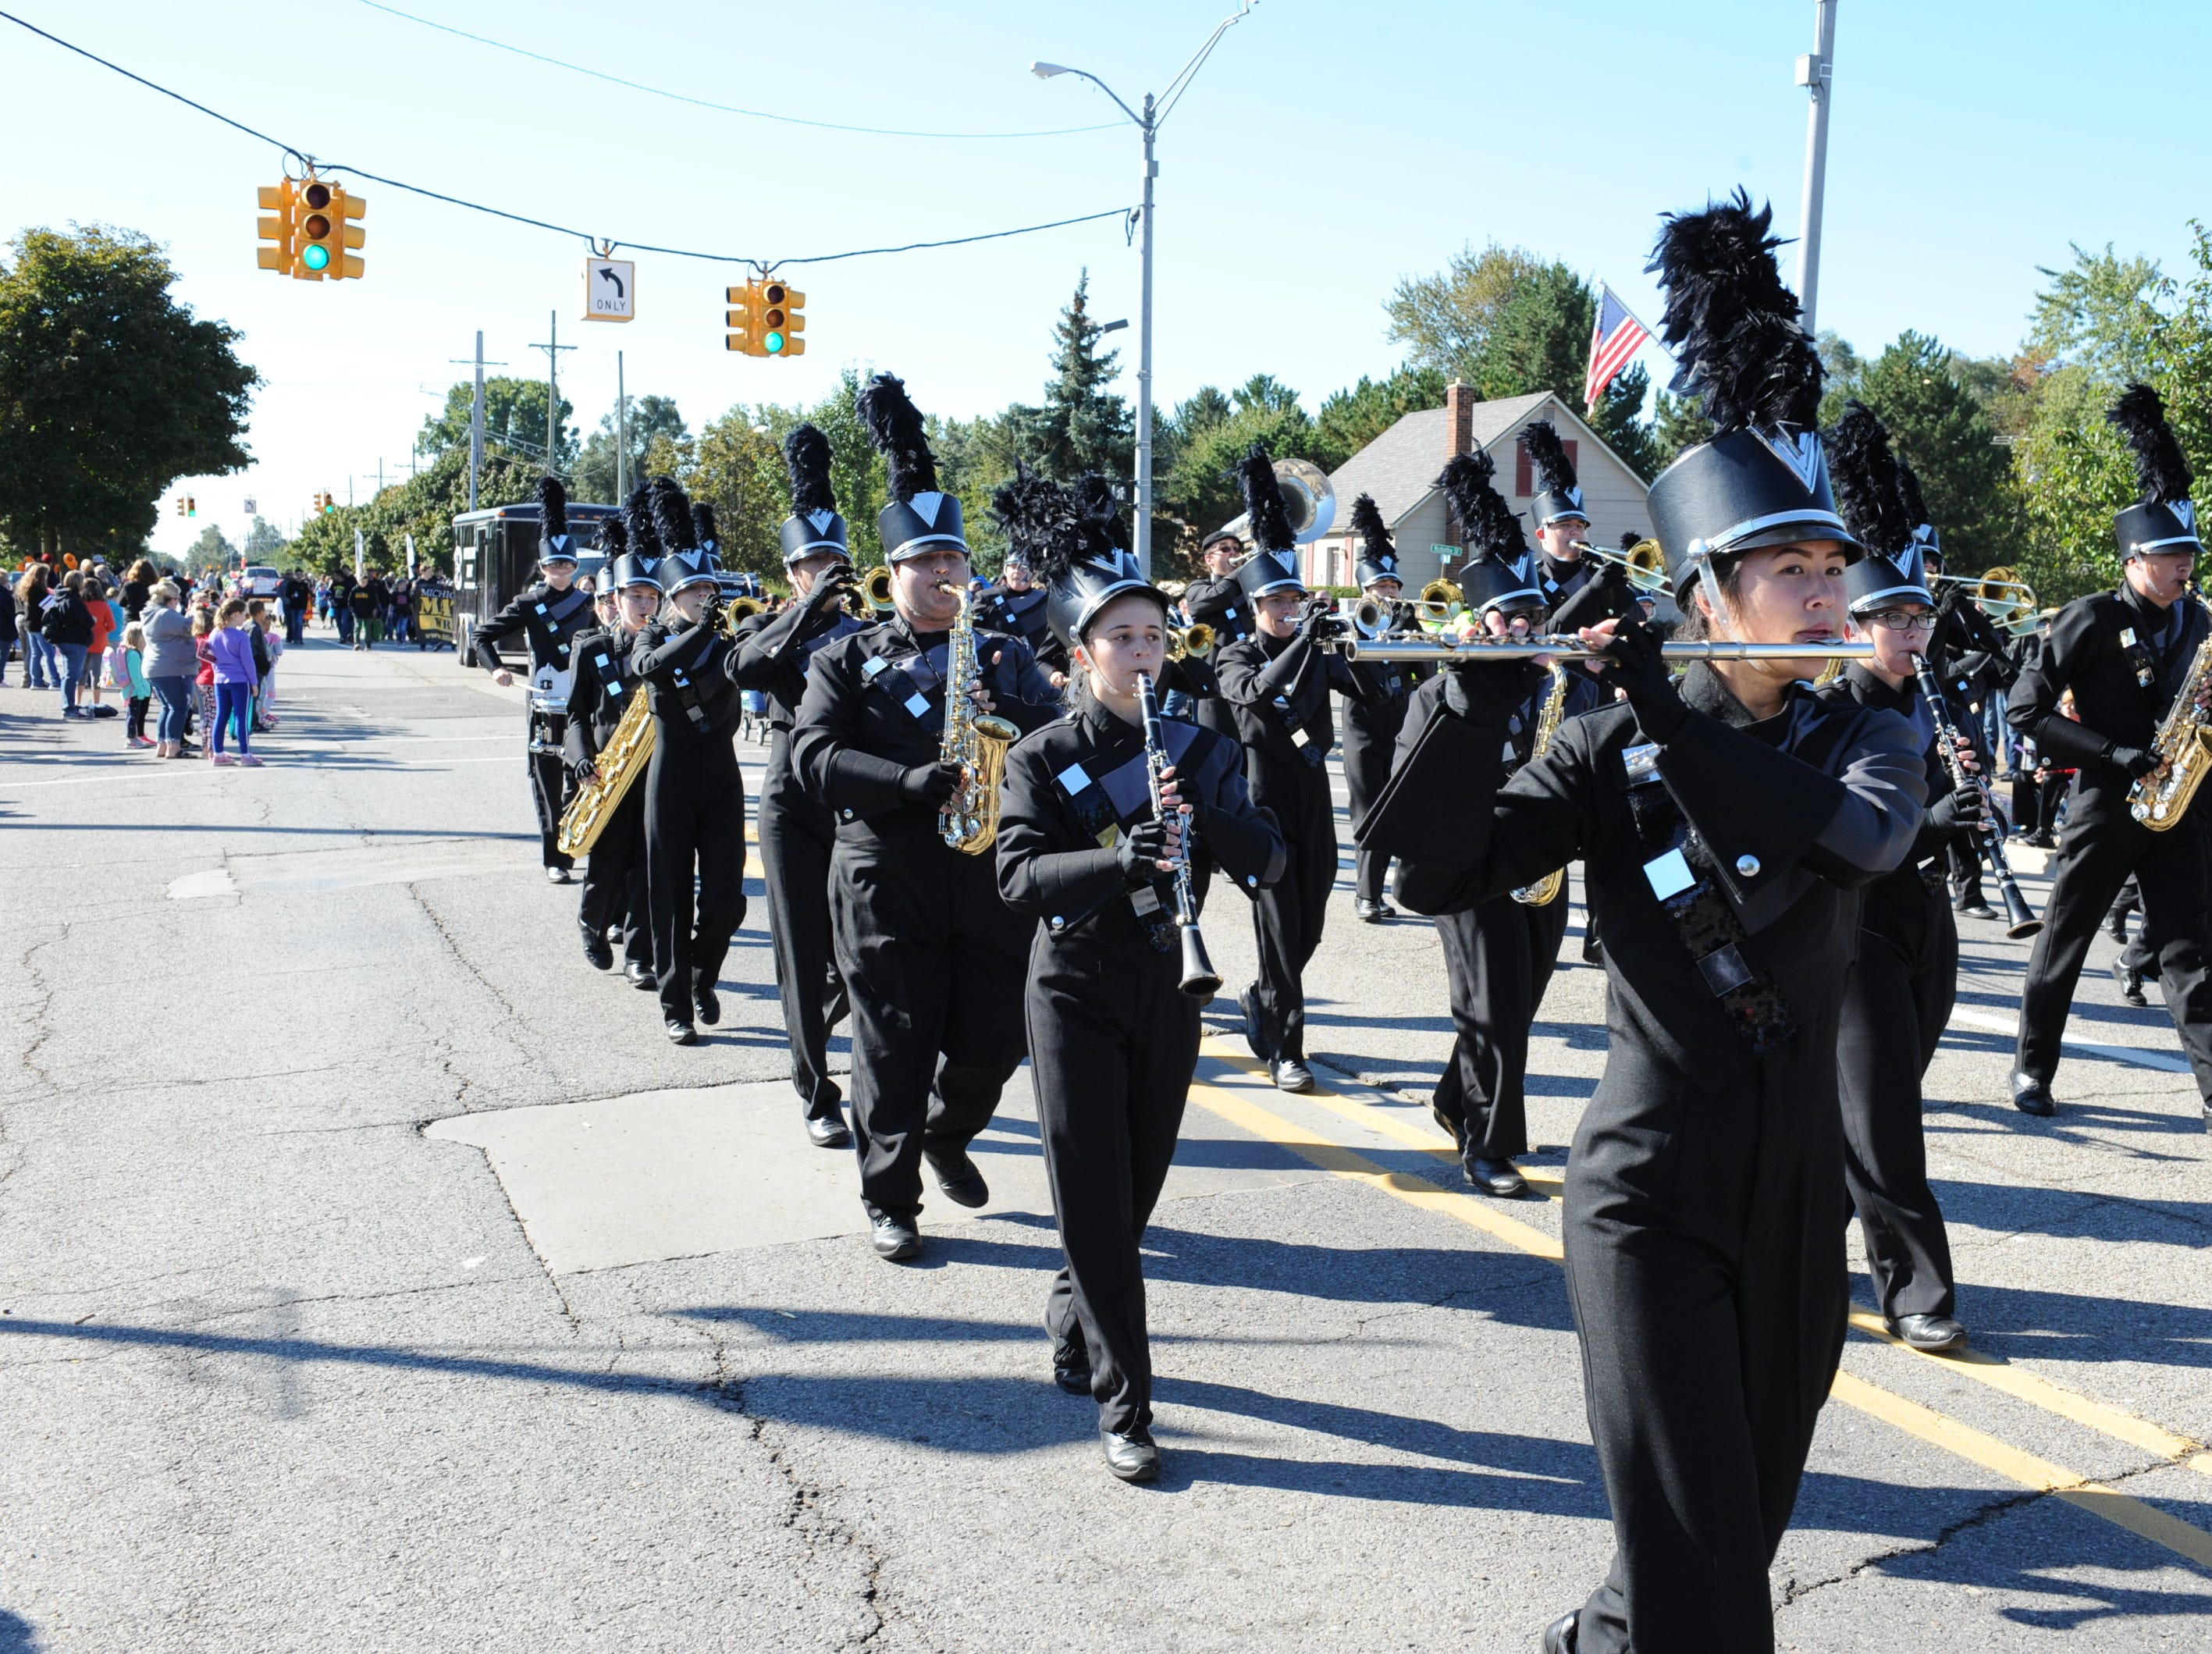 The South Lyon East High School marching band entertains the crowds.